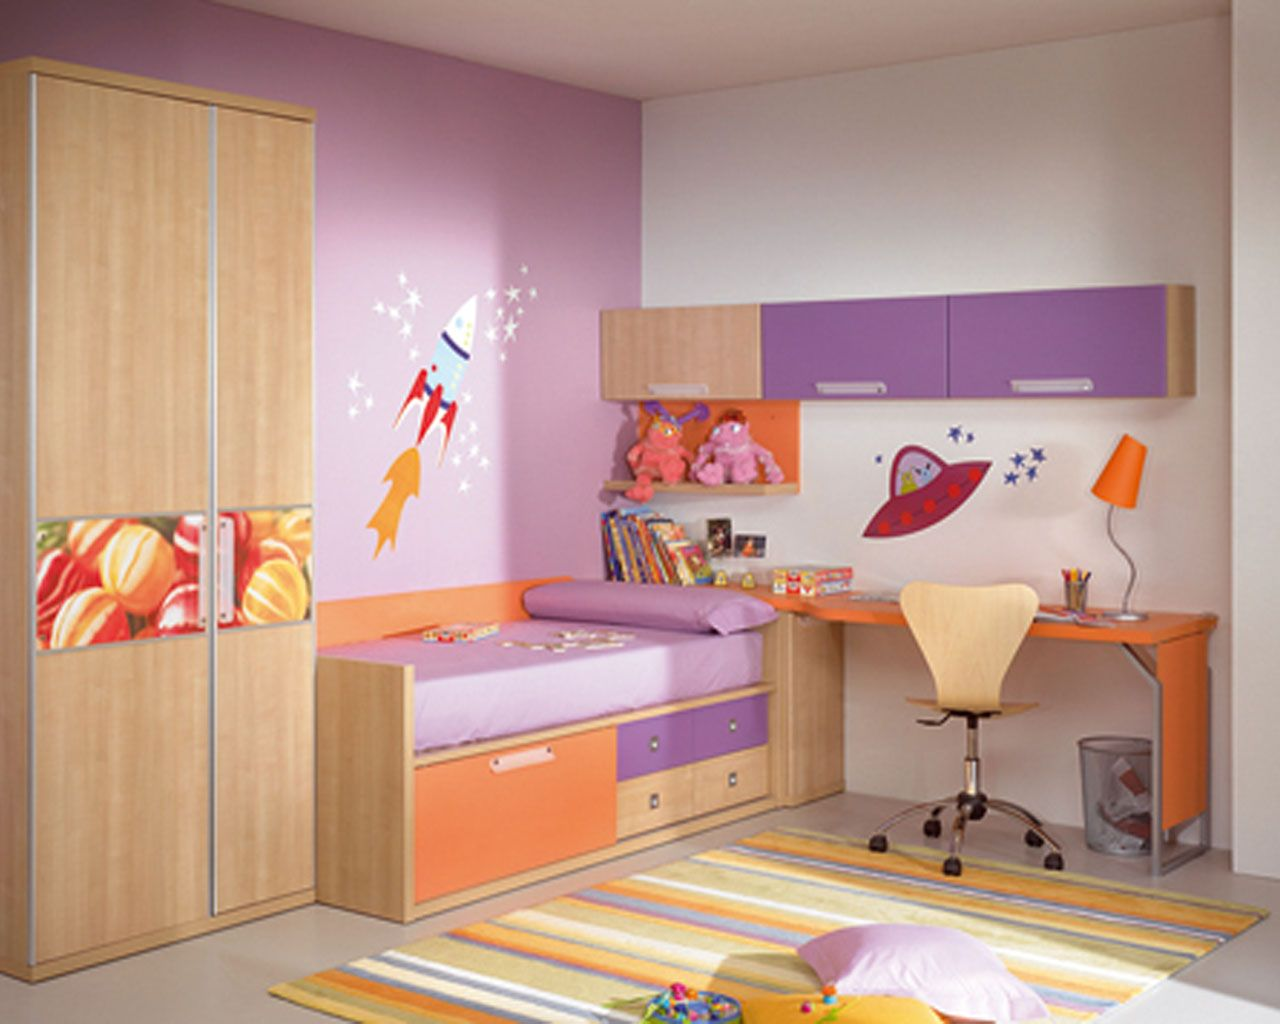 Simple Childrens Bedroom Decor Ideas In 2020 With Images